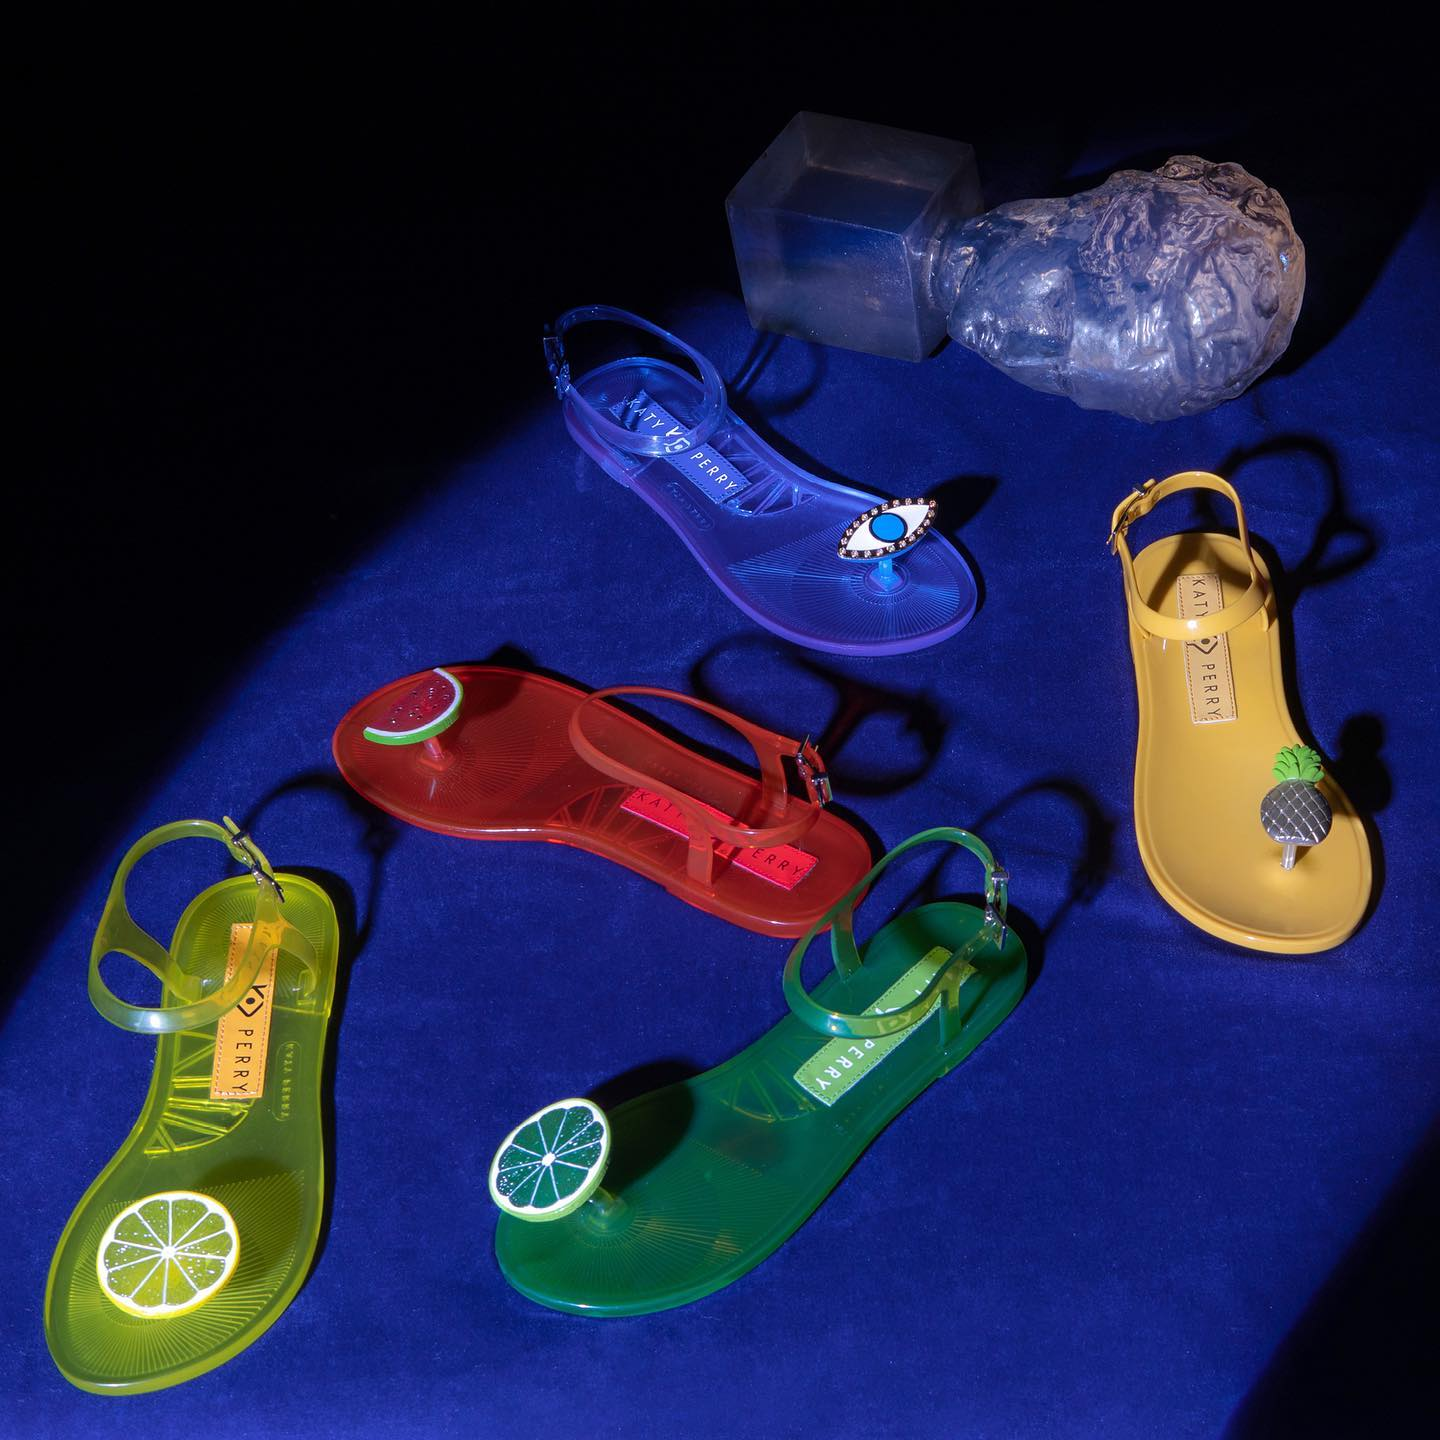 Katy Perry chanclas